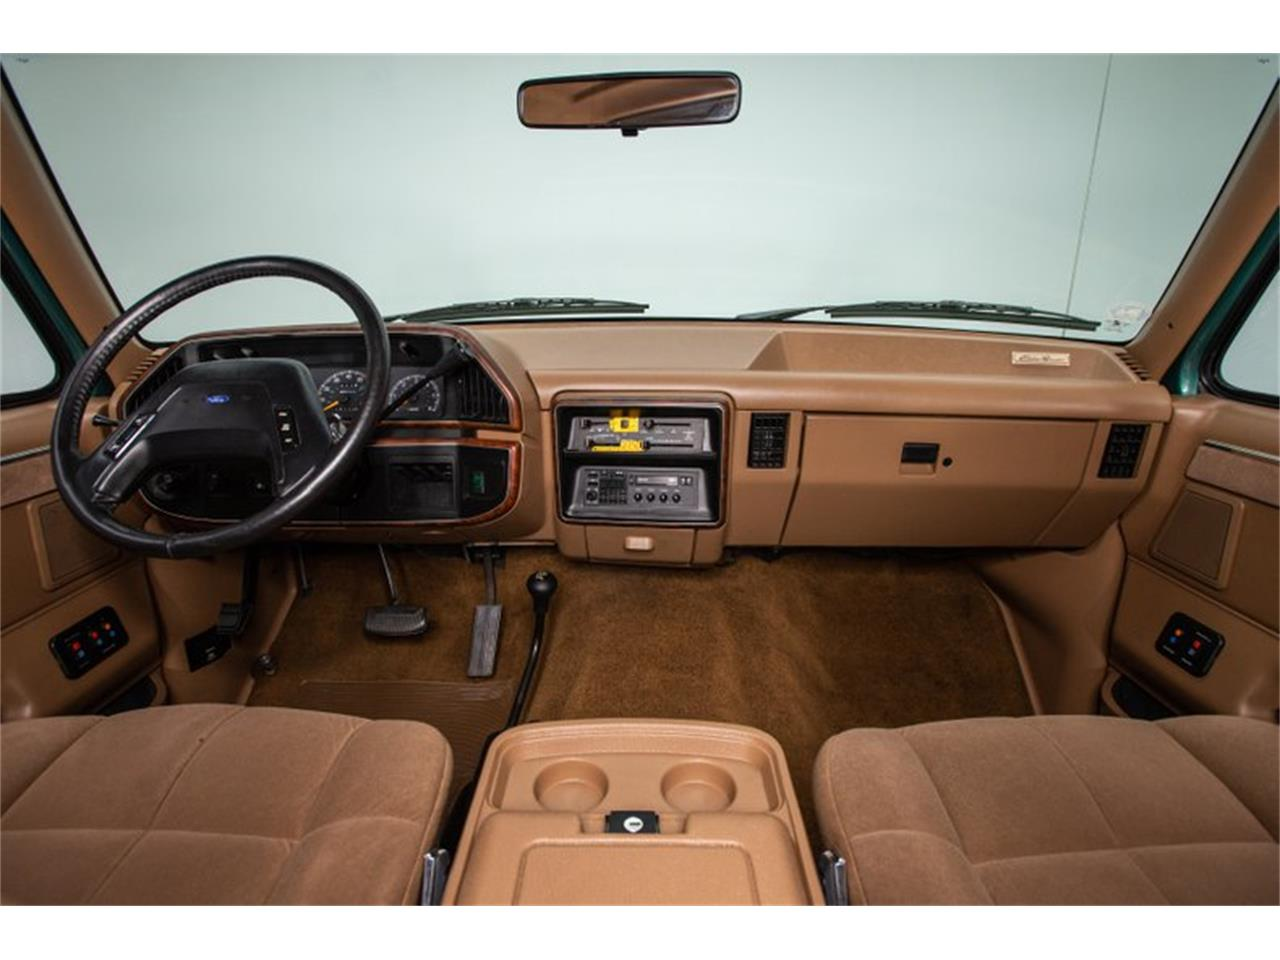 1988 Ford Bronco for sale in Charlotte, NC – photo 40